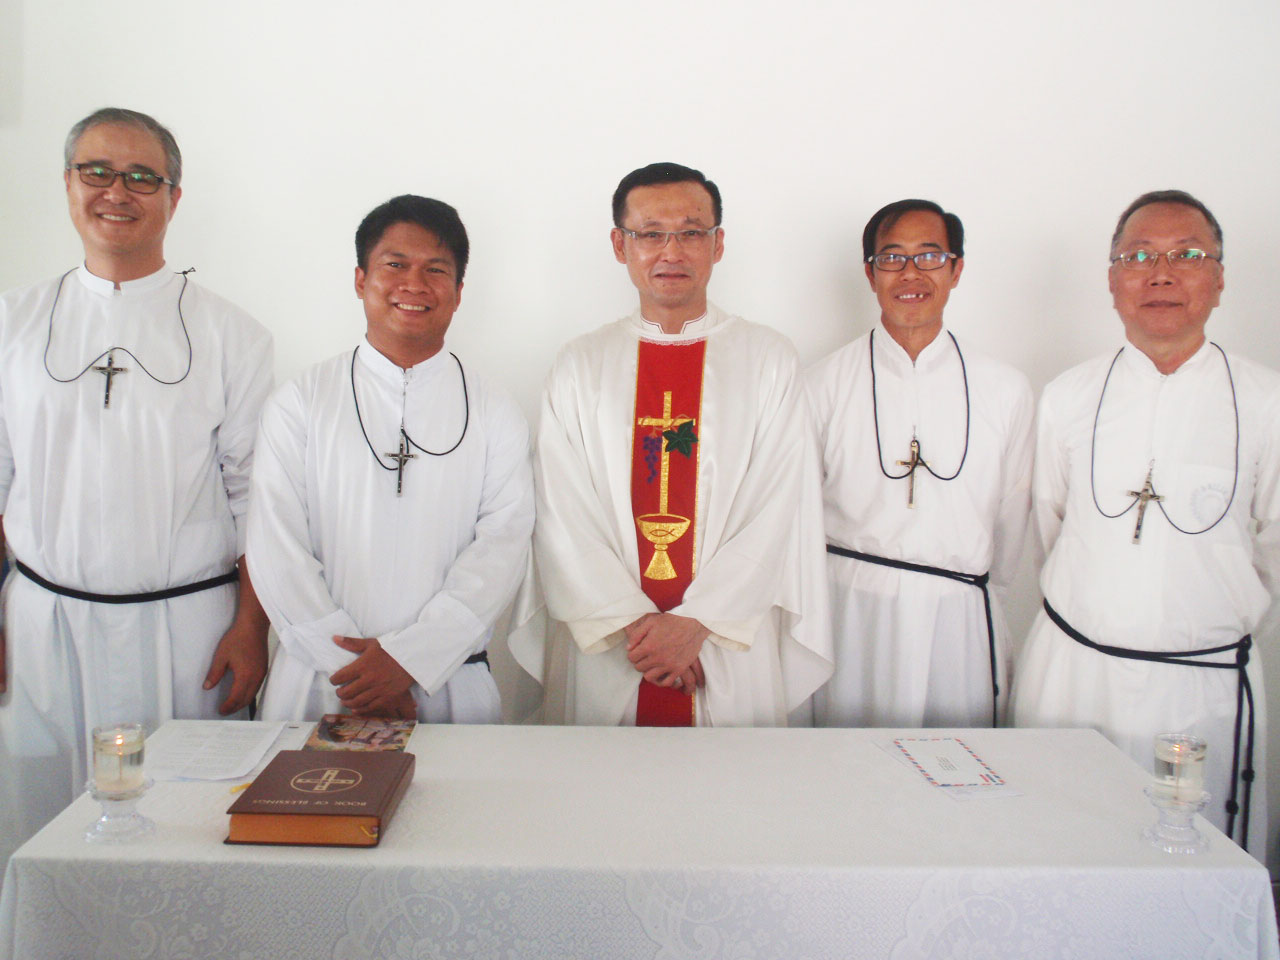 L-R Br Tony Choi, Br Demosthenes (local superior), Abp Wong, Br Robert Teoh (provincial), Br Thomas Chin pose for remembrance after the Mass.